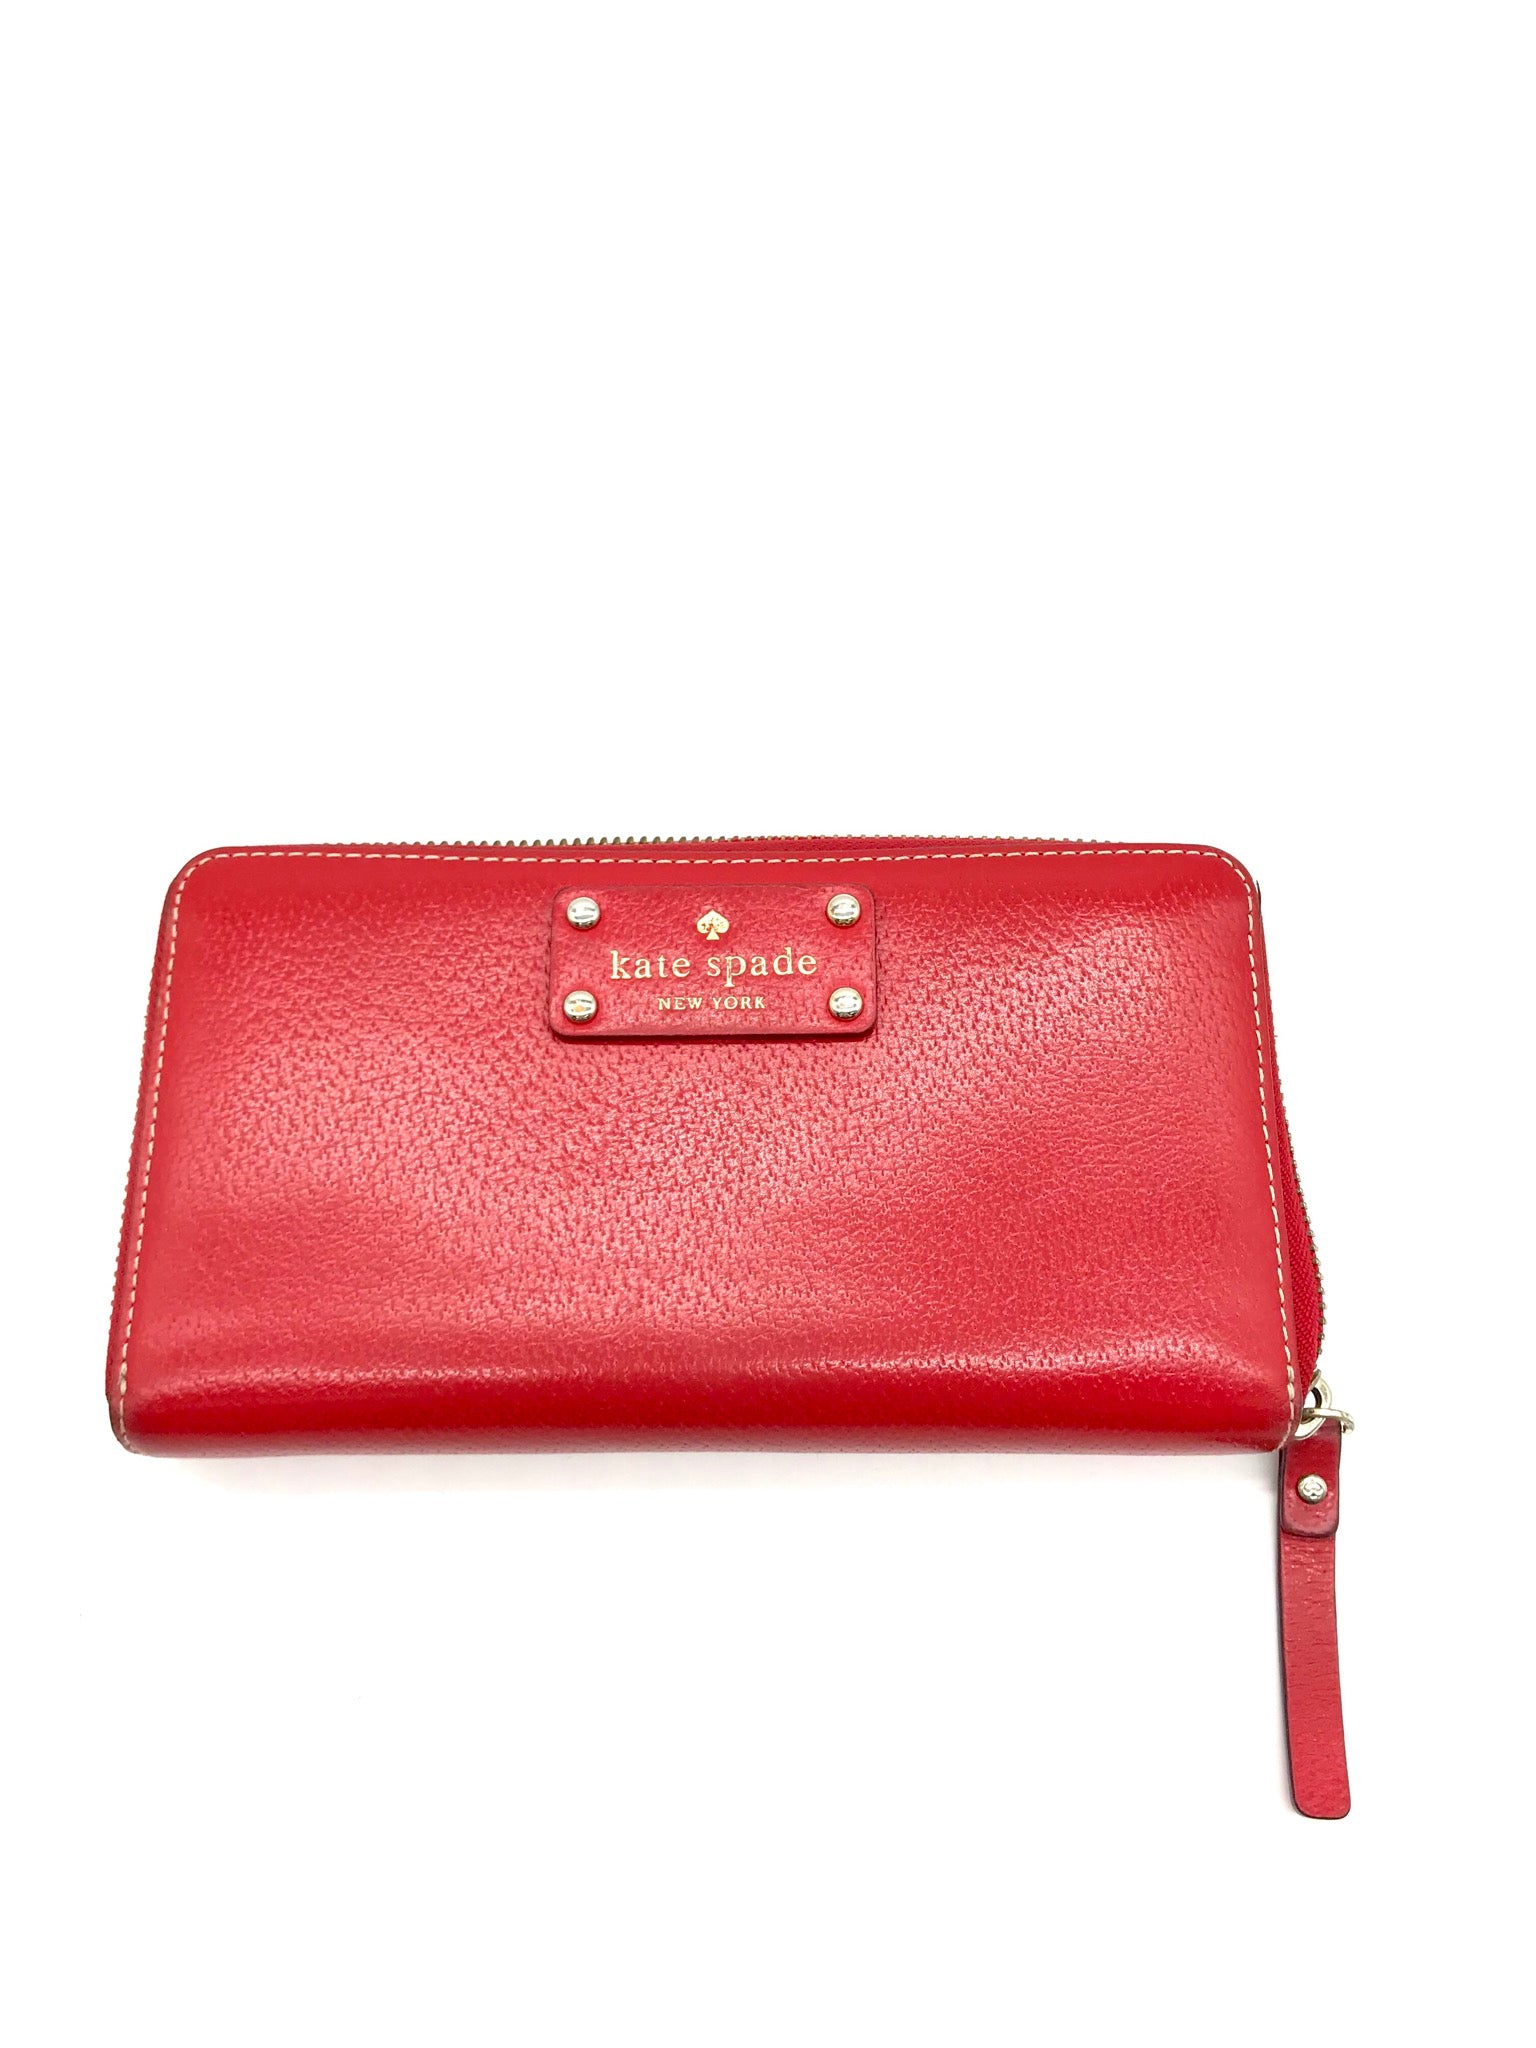 Primary Photo - BRAND: KATE SPADE <BR>STYLE: WALLET <BR>COLOR: RED <BR>SIZE: LARGE <BR>SKU: 262-26275-66087<BR>AS IS SLIGHT WEAR <BR>DESIGNER BRAND FINAL SALE